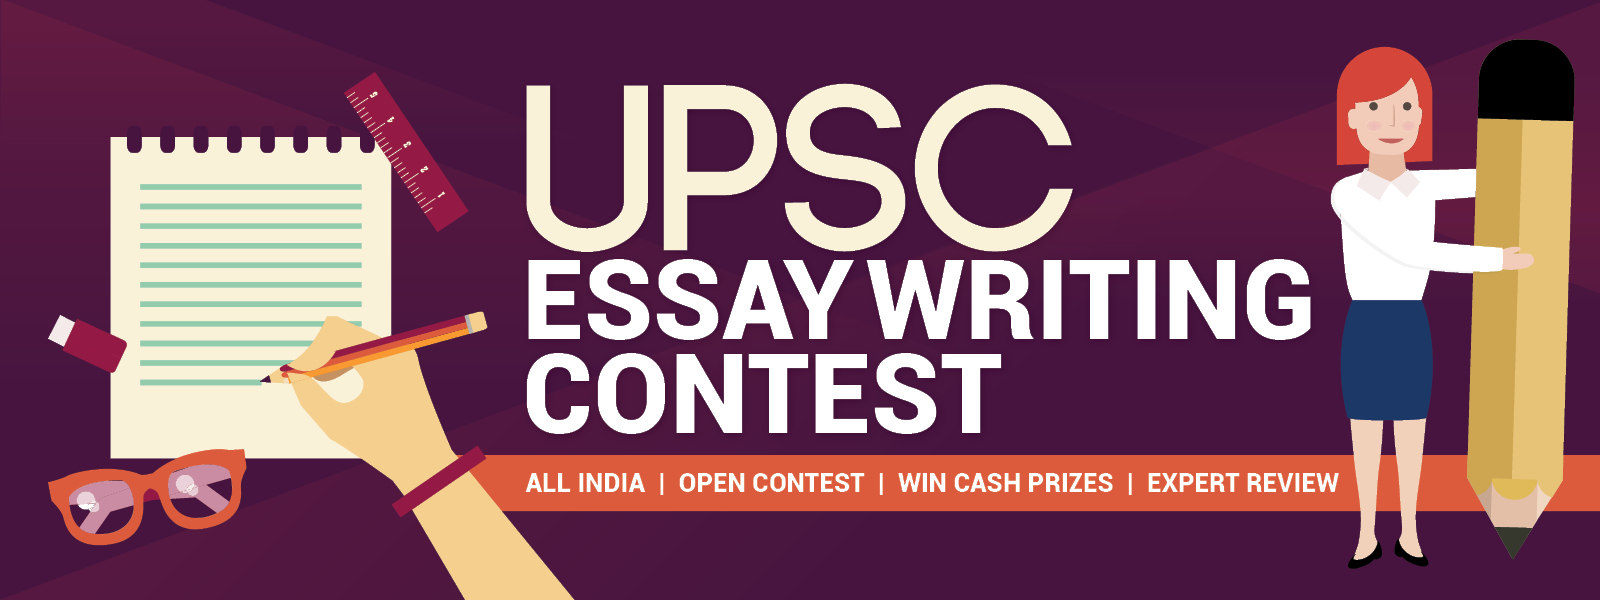 015 Essay Example Writing Contest Incredible Free Contests 2018 International Competitions For High School Students India Full